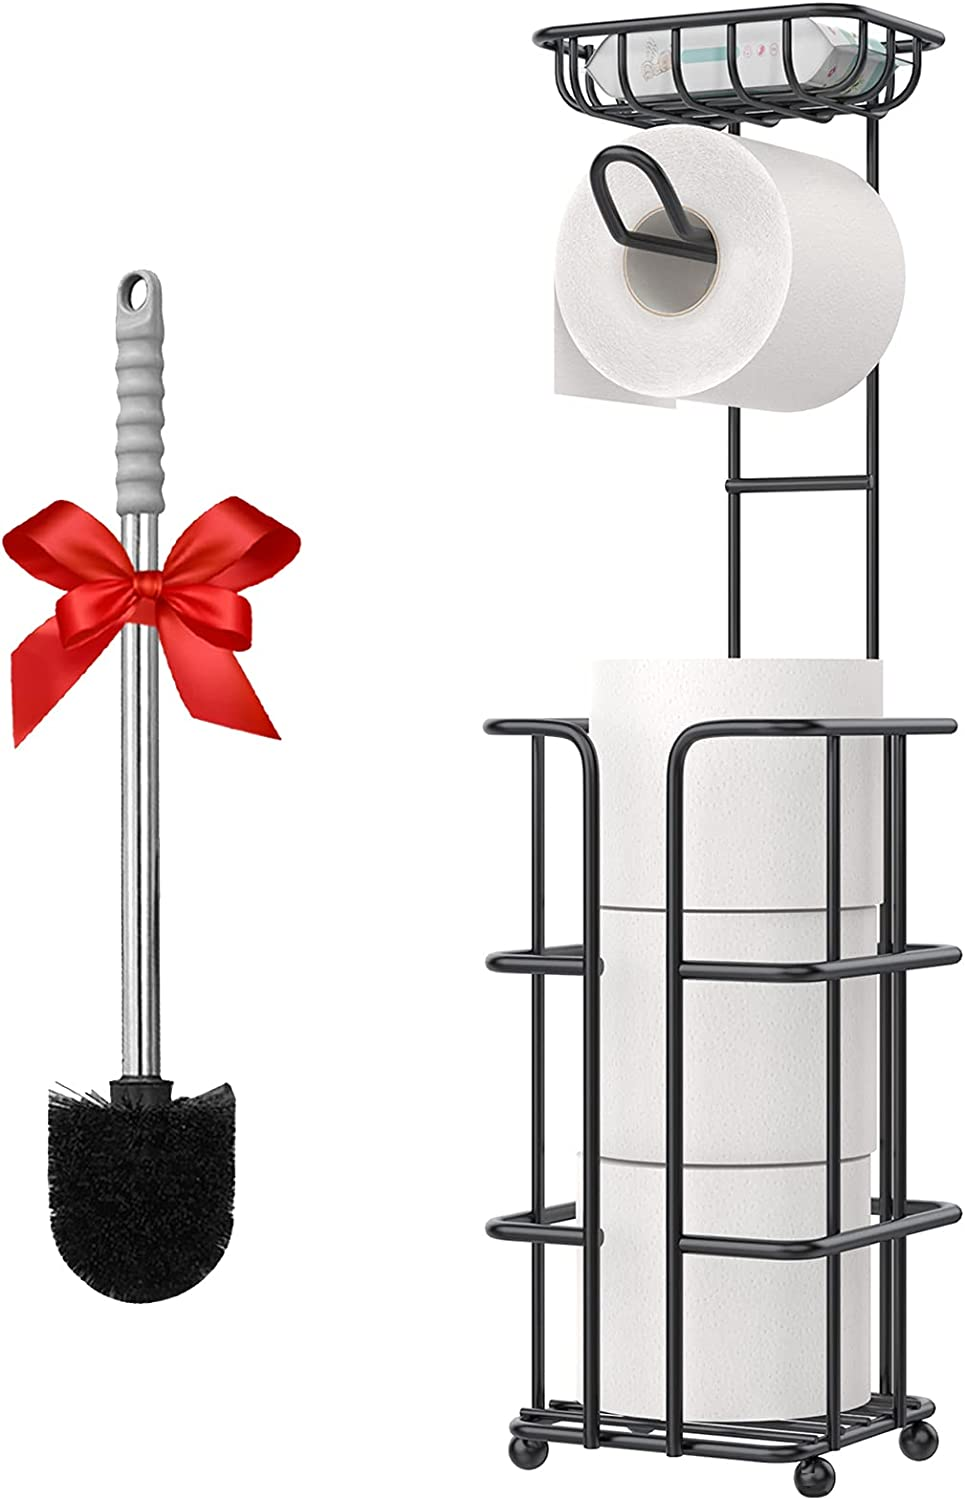 Toilet San Diego Mall Paper Holder Roll Stand Max 75% OFF